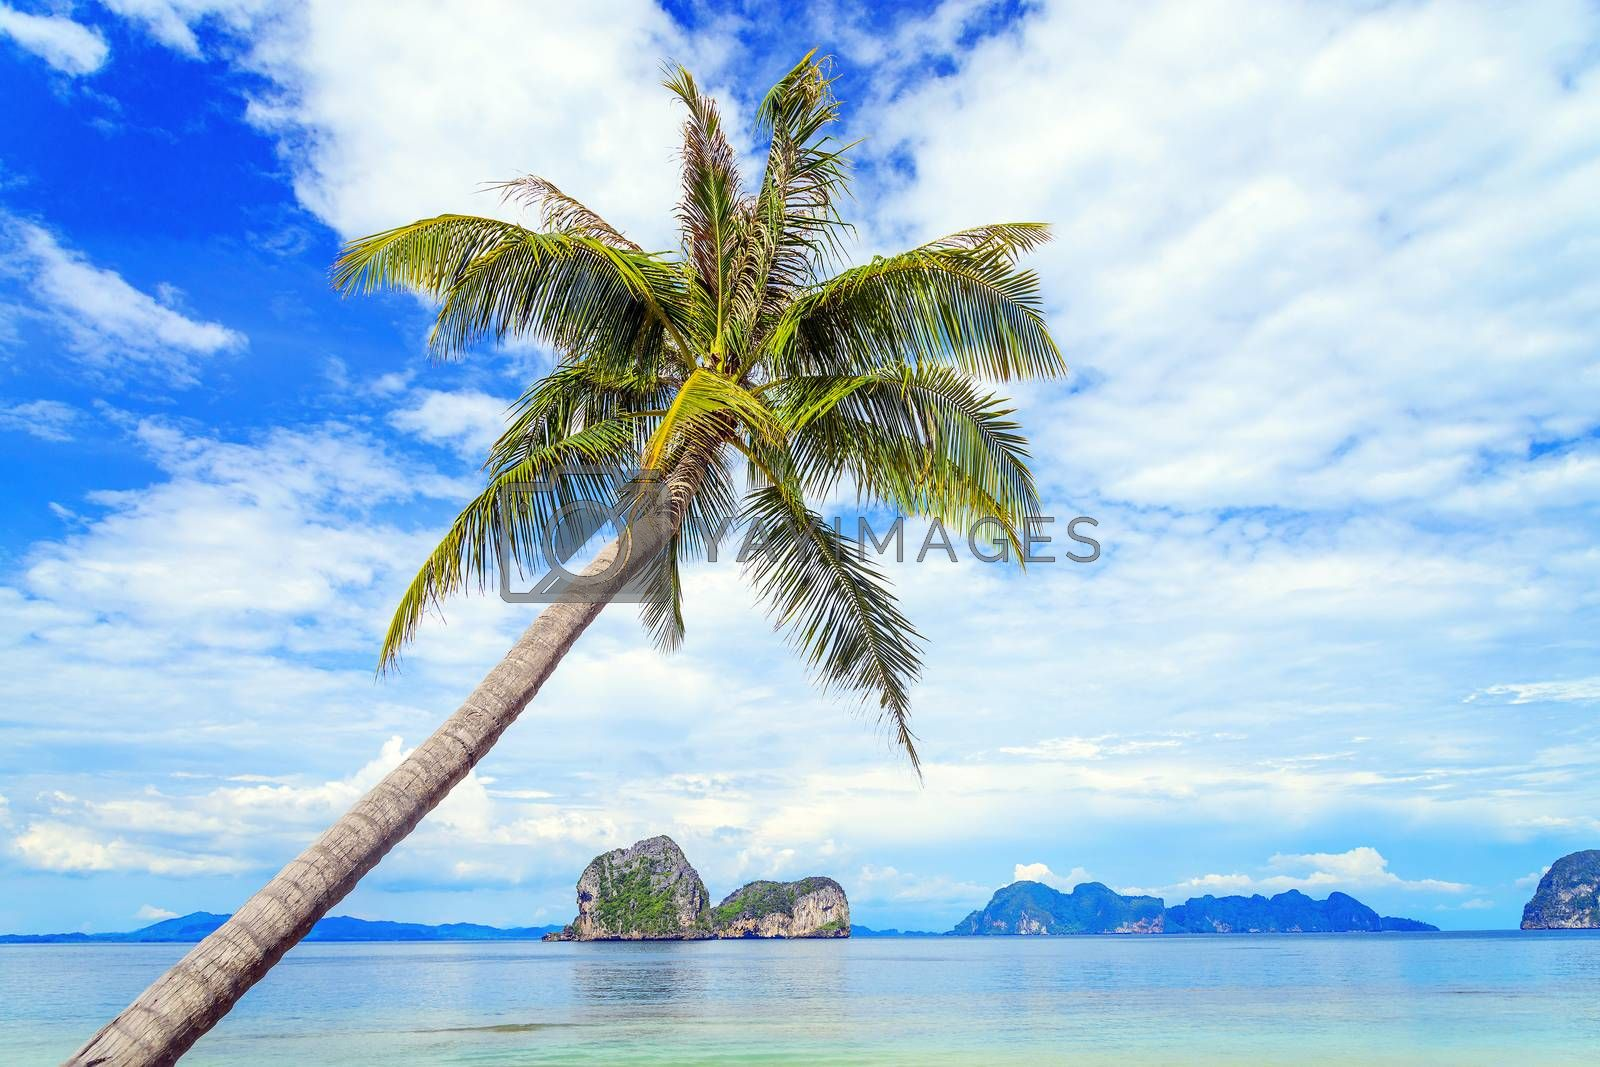 Coconut tree and beach at Ngai Island, an island in the Andaman  by jakgree